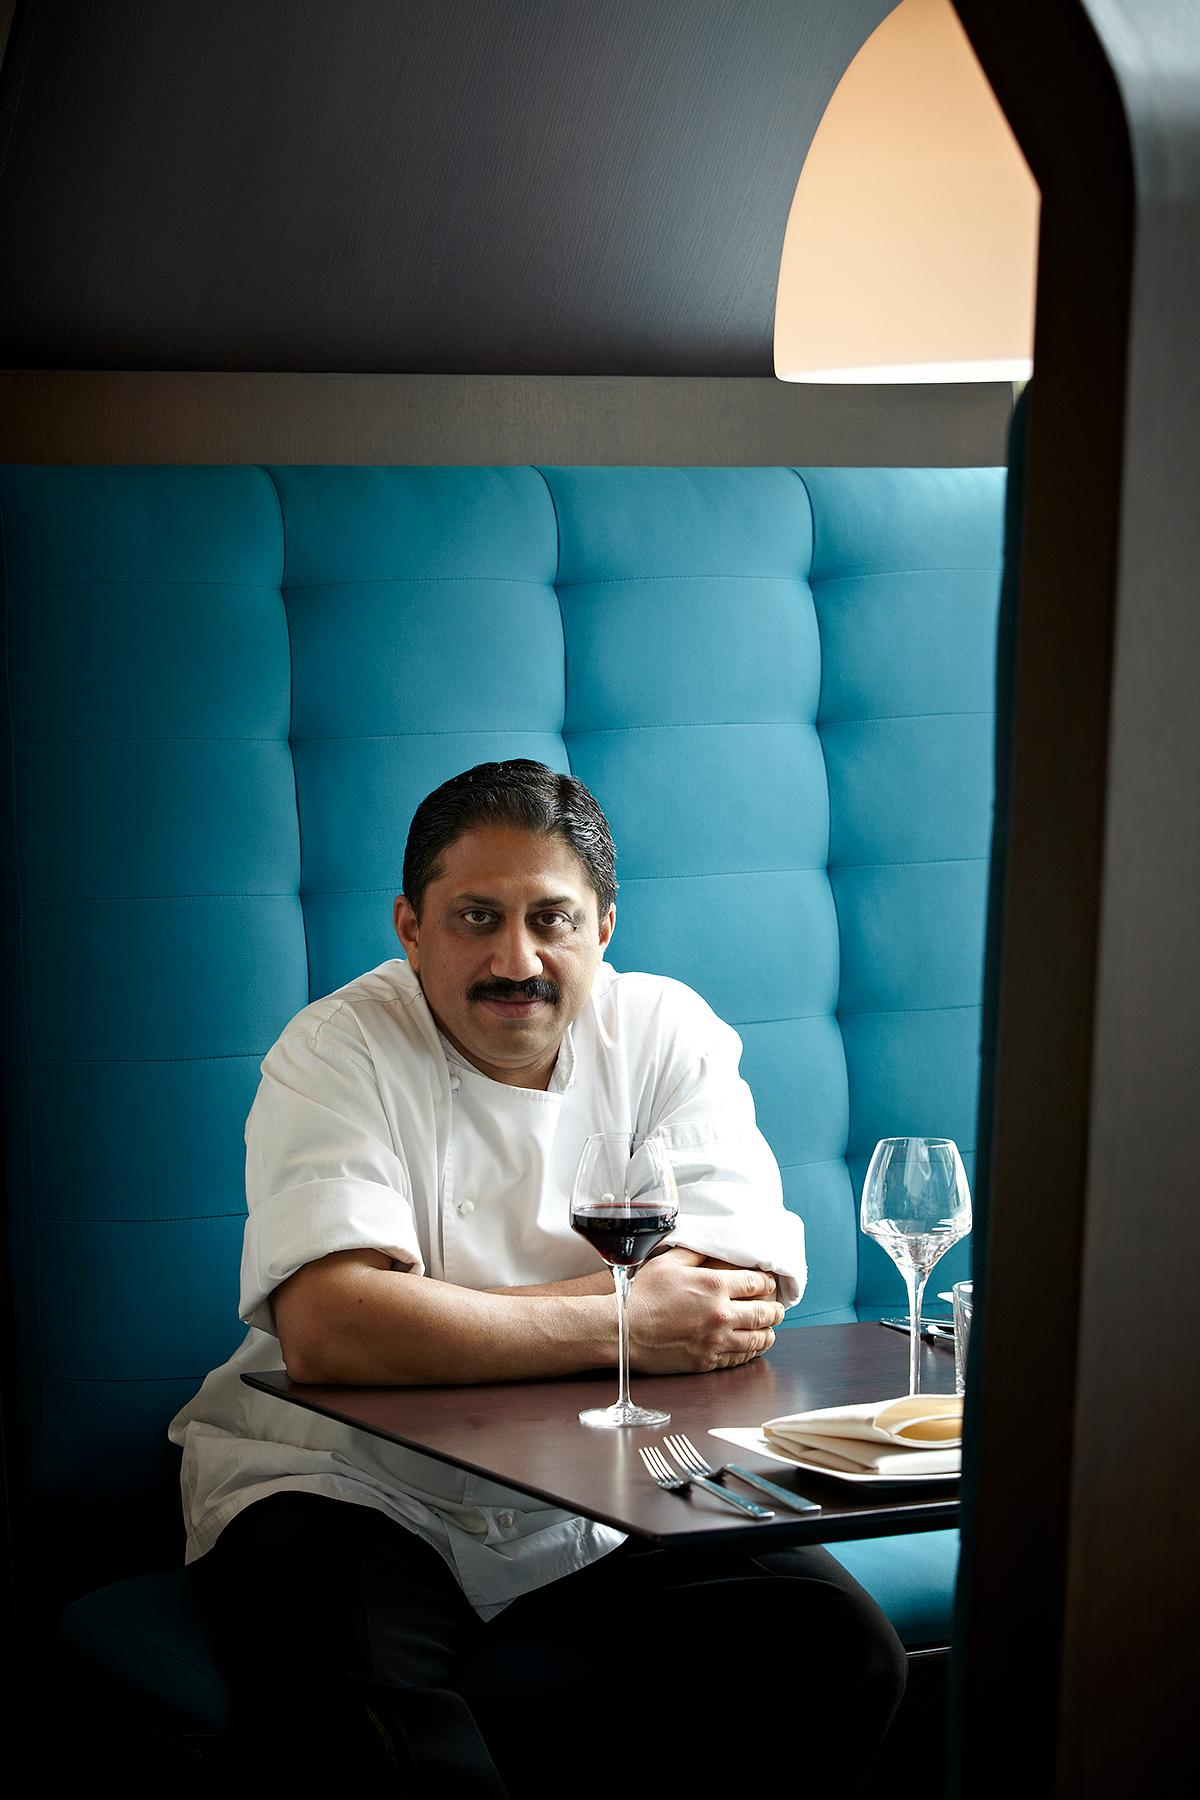 Vikram Sunderam of Rasika is a semifinalist for Outstanding Chef. (Image: Greg Powers)